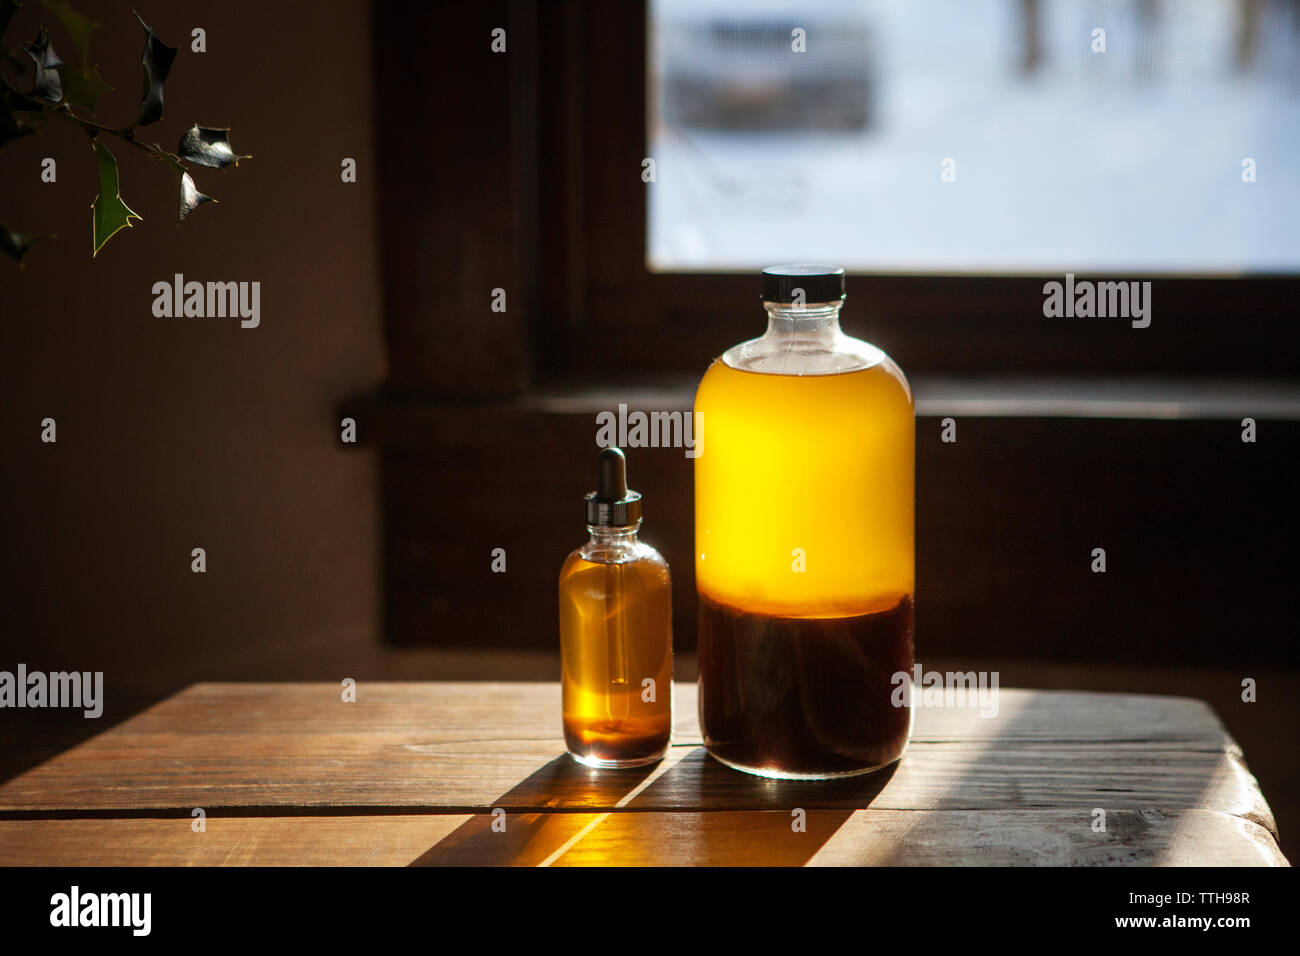 Oil bottles on wooden table at home - Stock Image